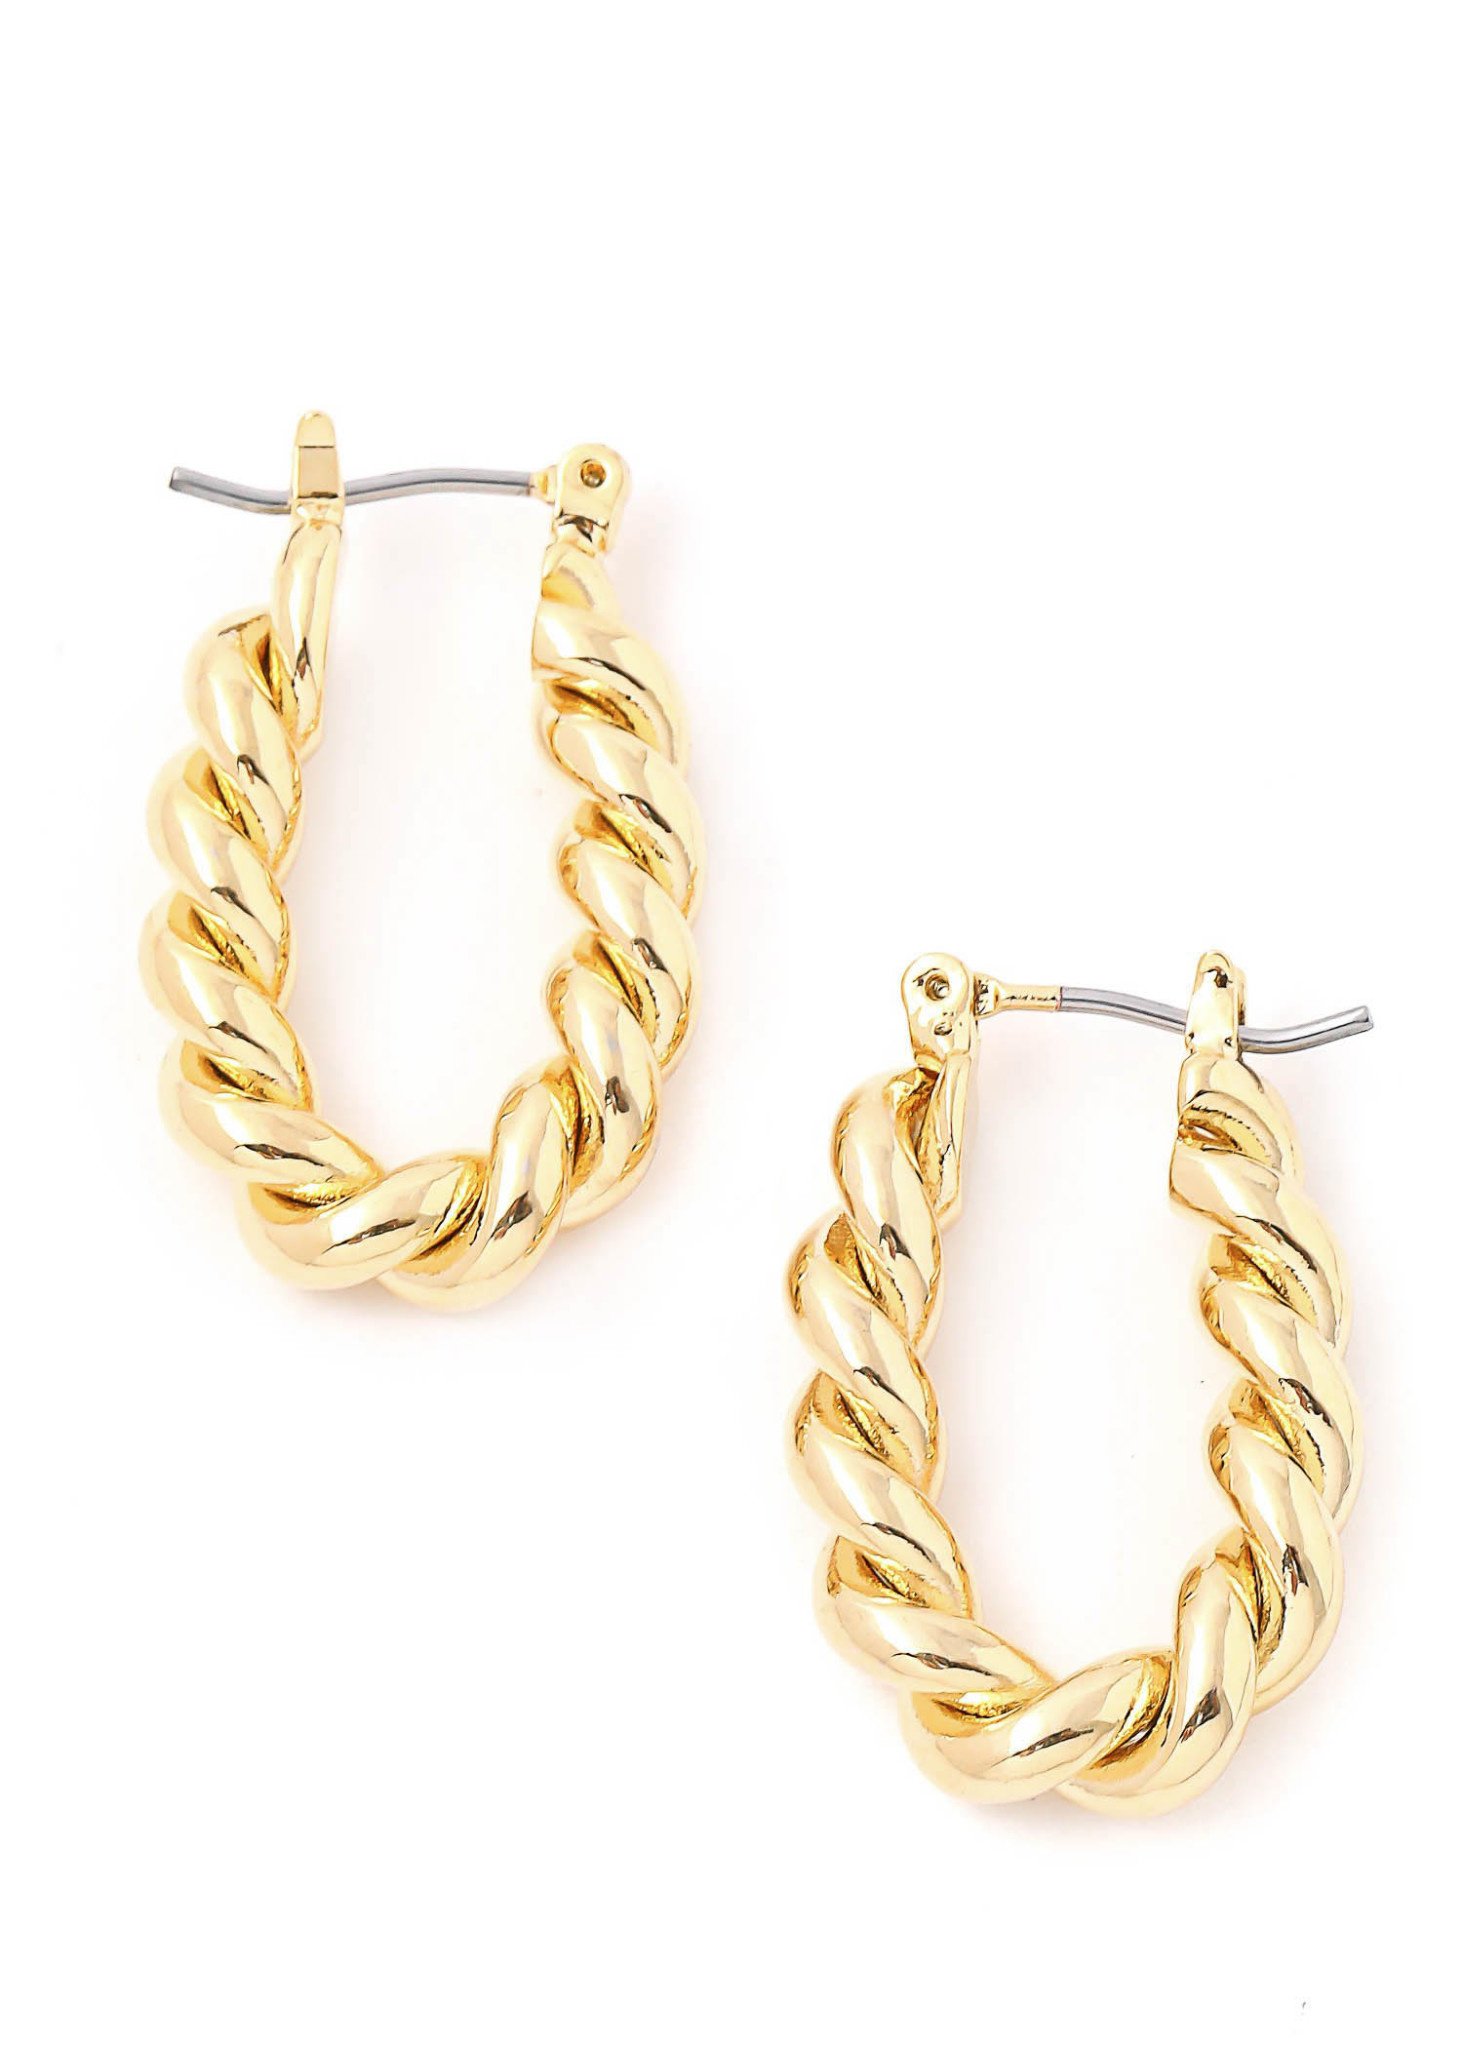 RADIANCE TEXTURED HOOPS